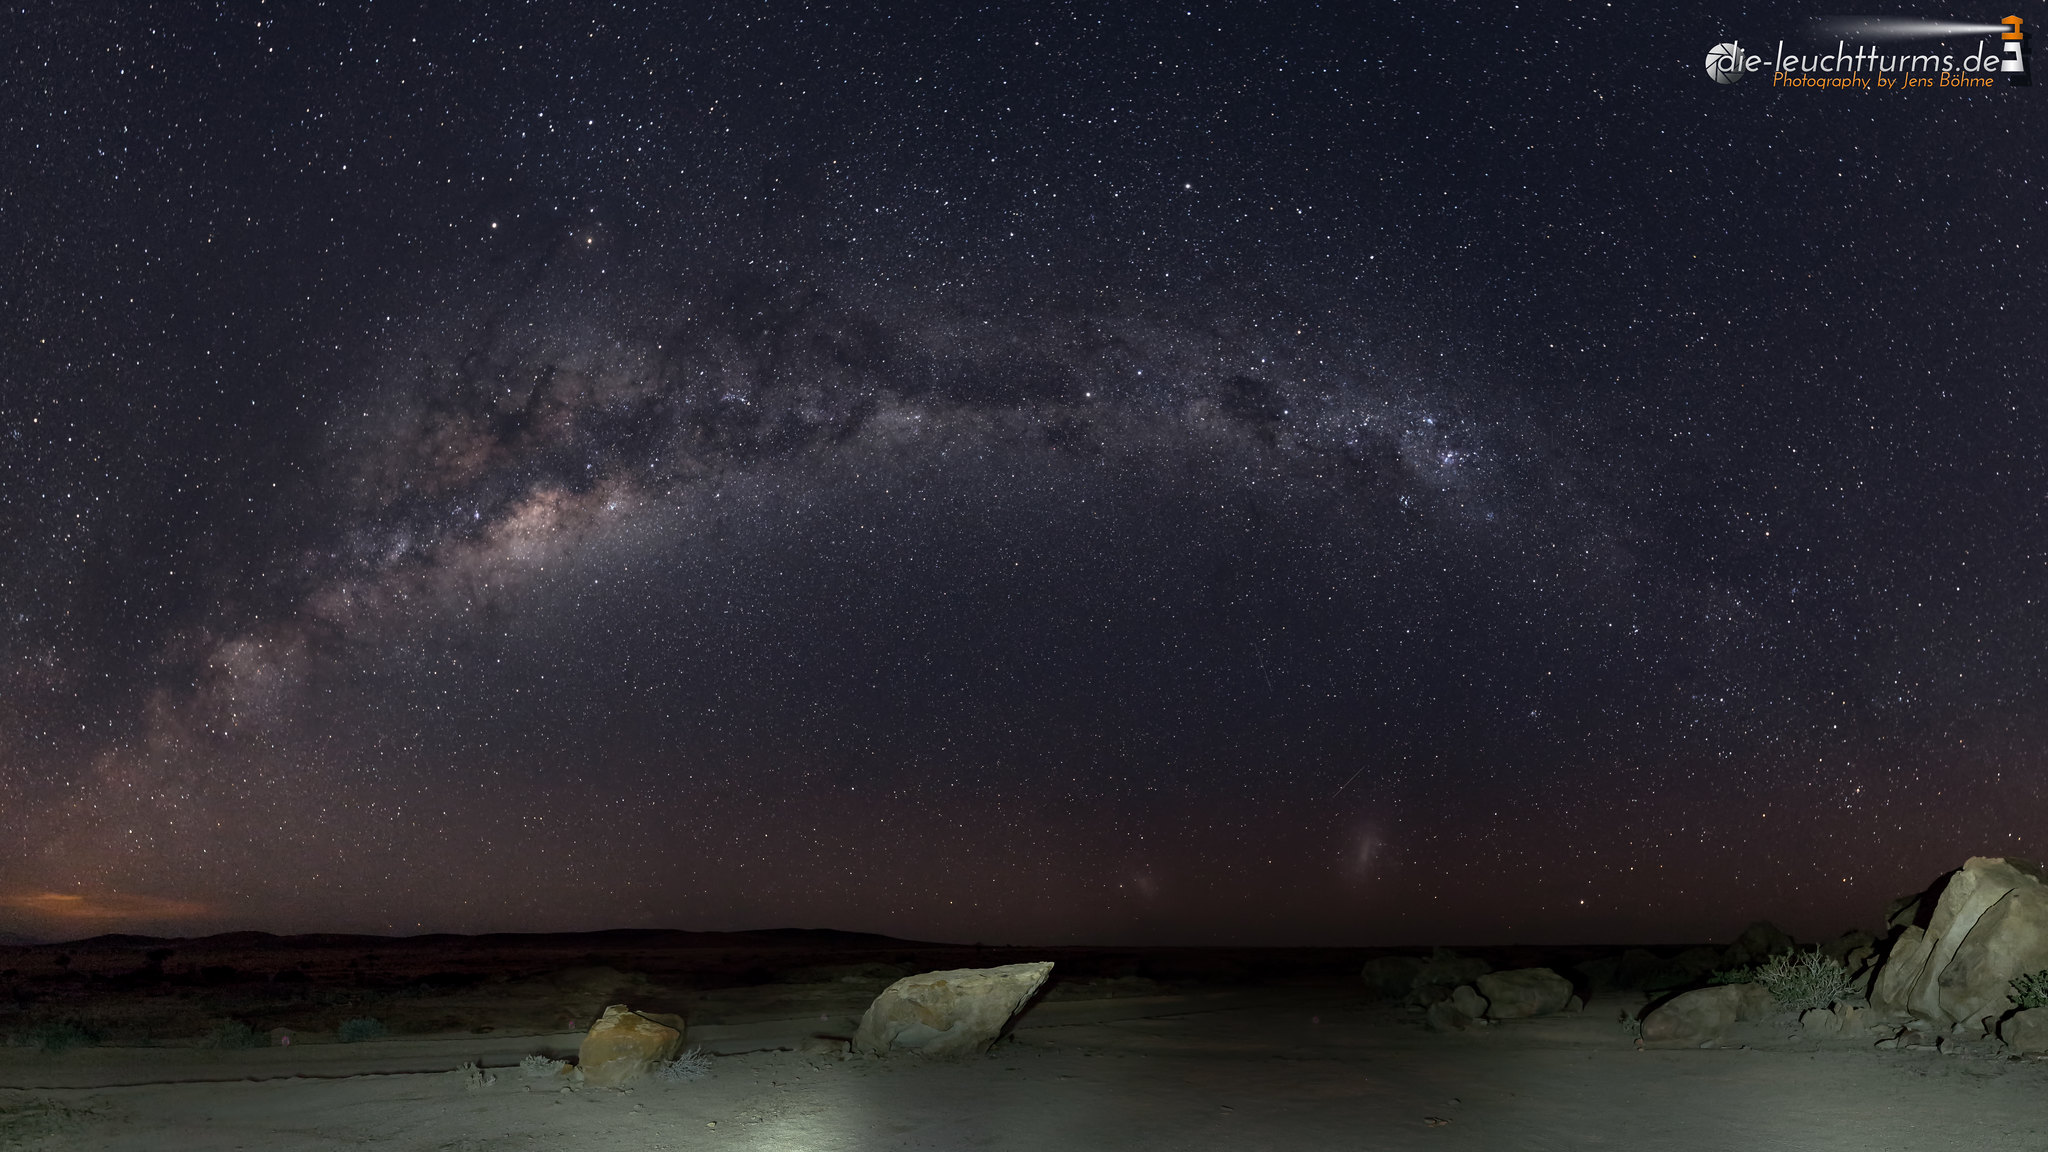 Magellanic Clouds and Milky Way